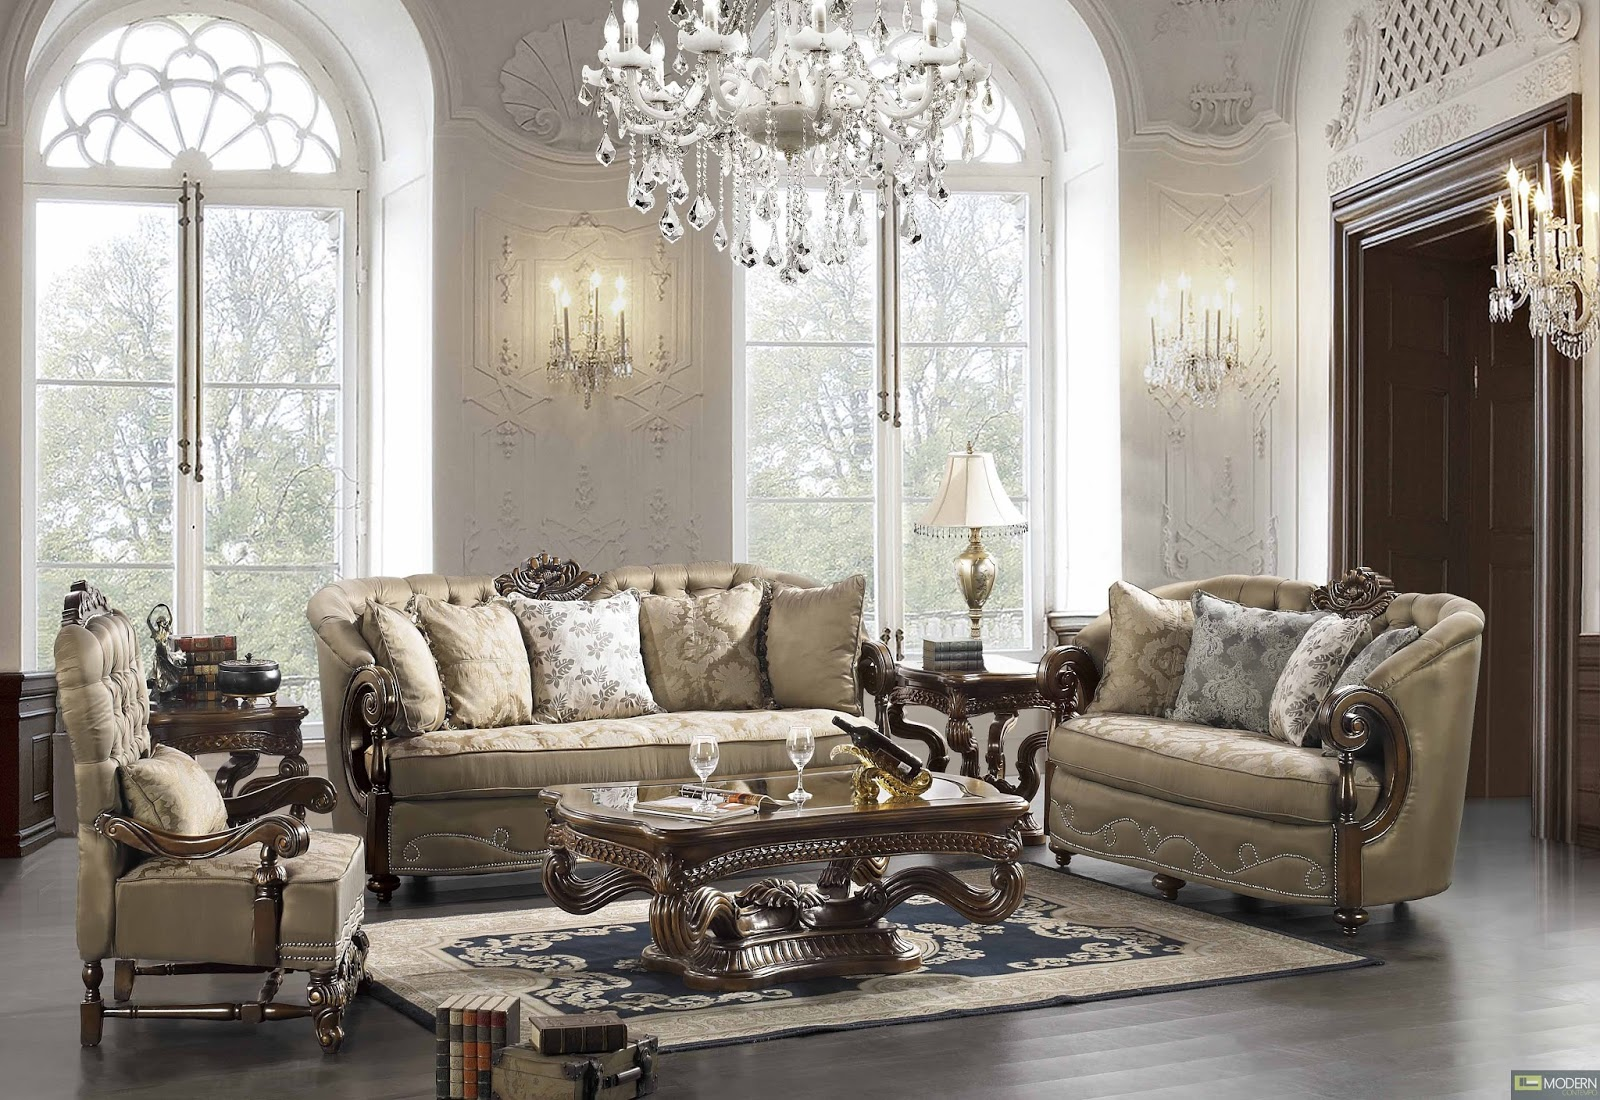 Best furniture ideas for home traditional classic for Classic traditional living rooms